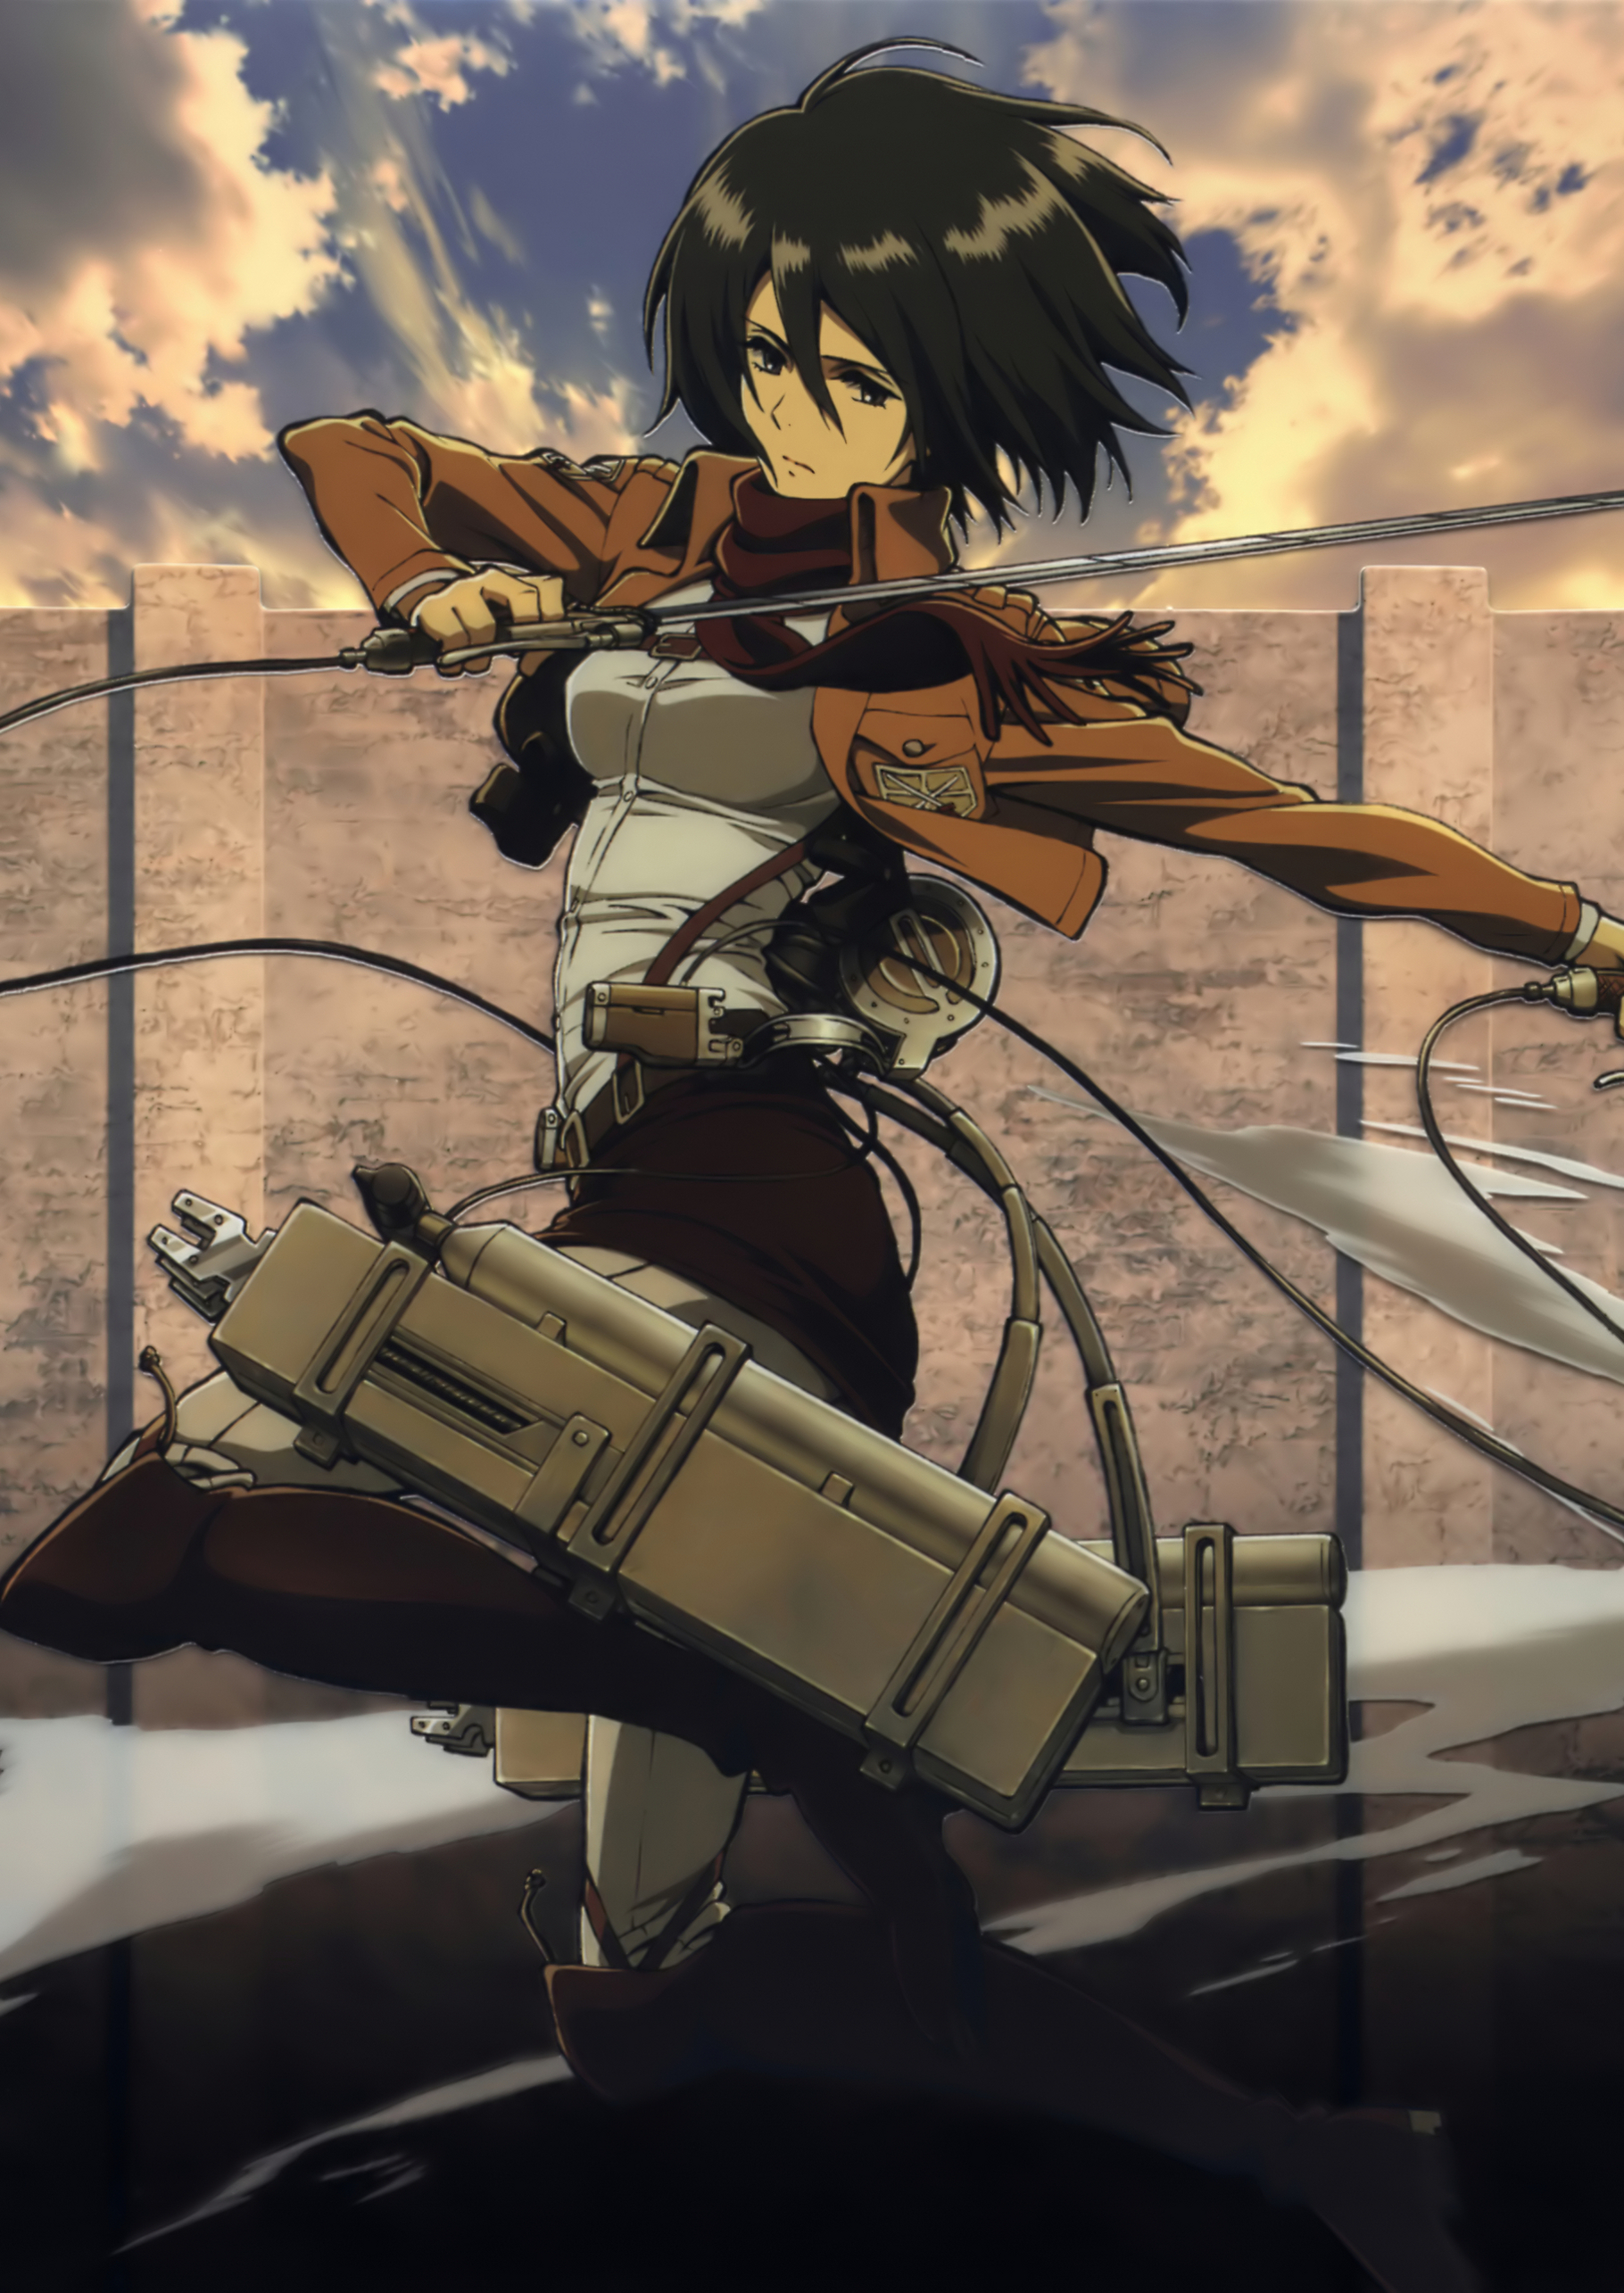 Mikasa Ackerman Wallpaper Phone 1062x1500 Download Hd Wallpaper Wallpapertip